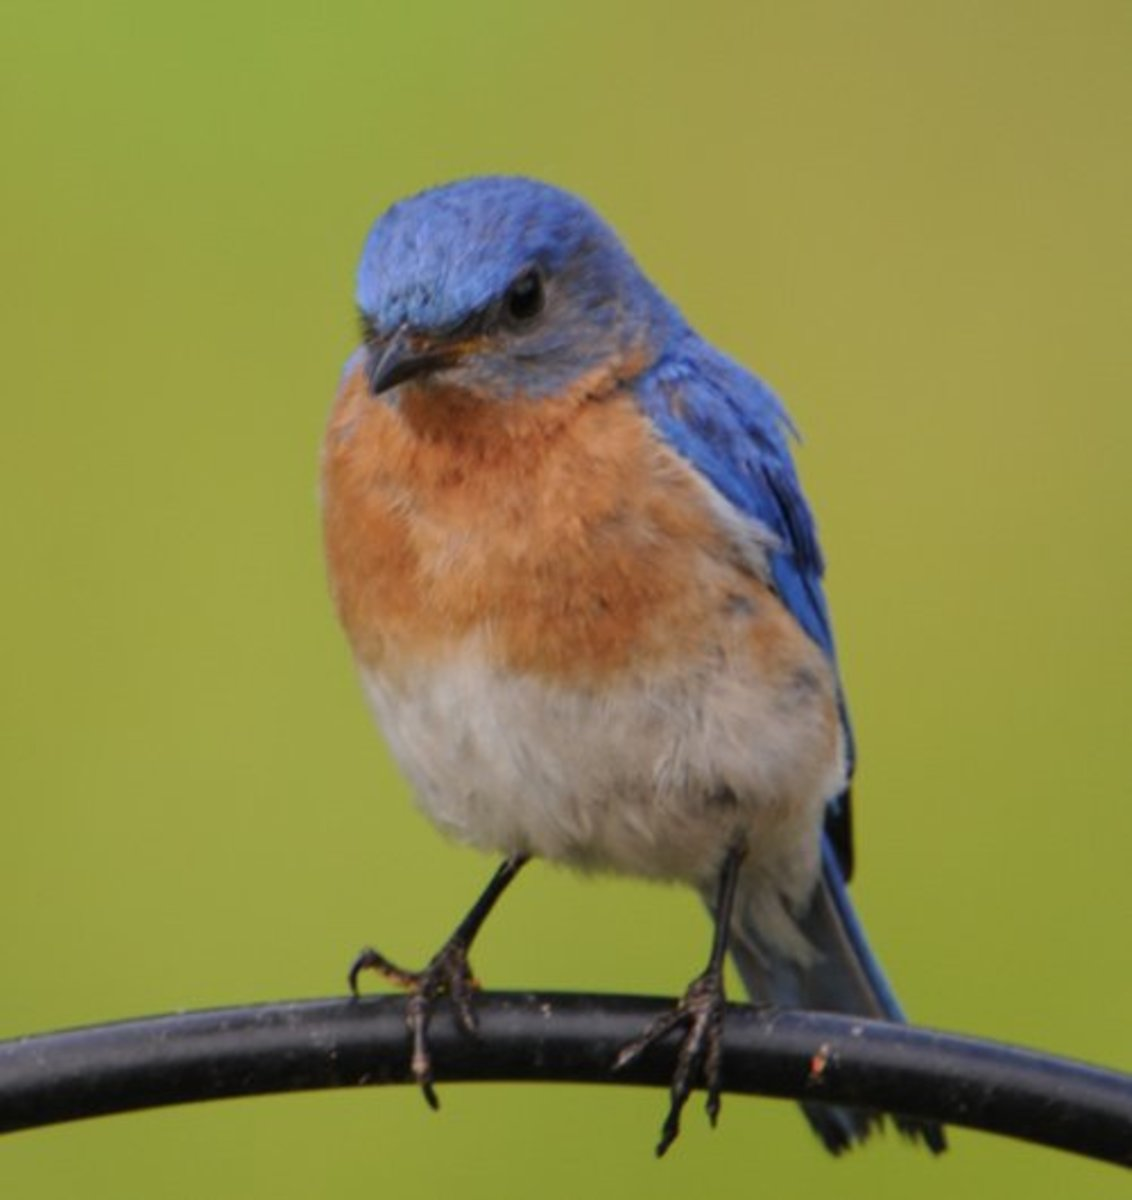 eco feeders specifically designed duncraft for discover com bluebird at bluebirds feeder friendly